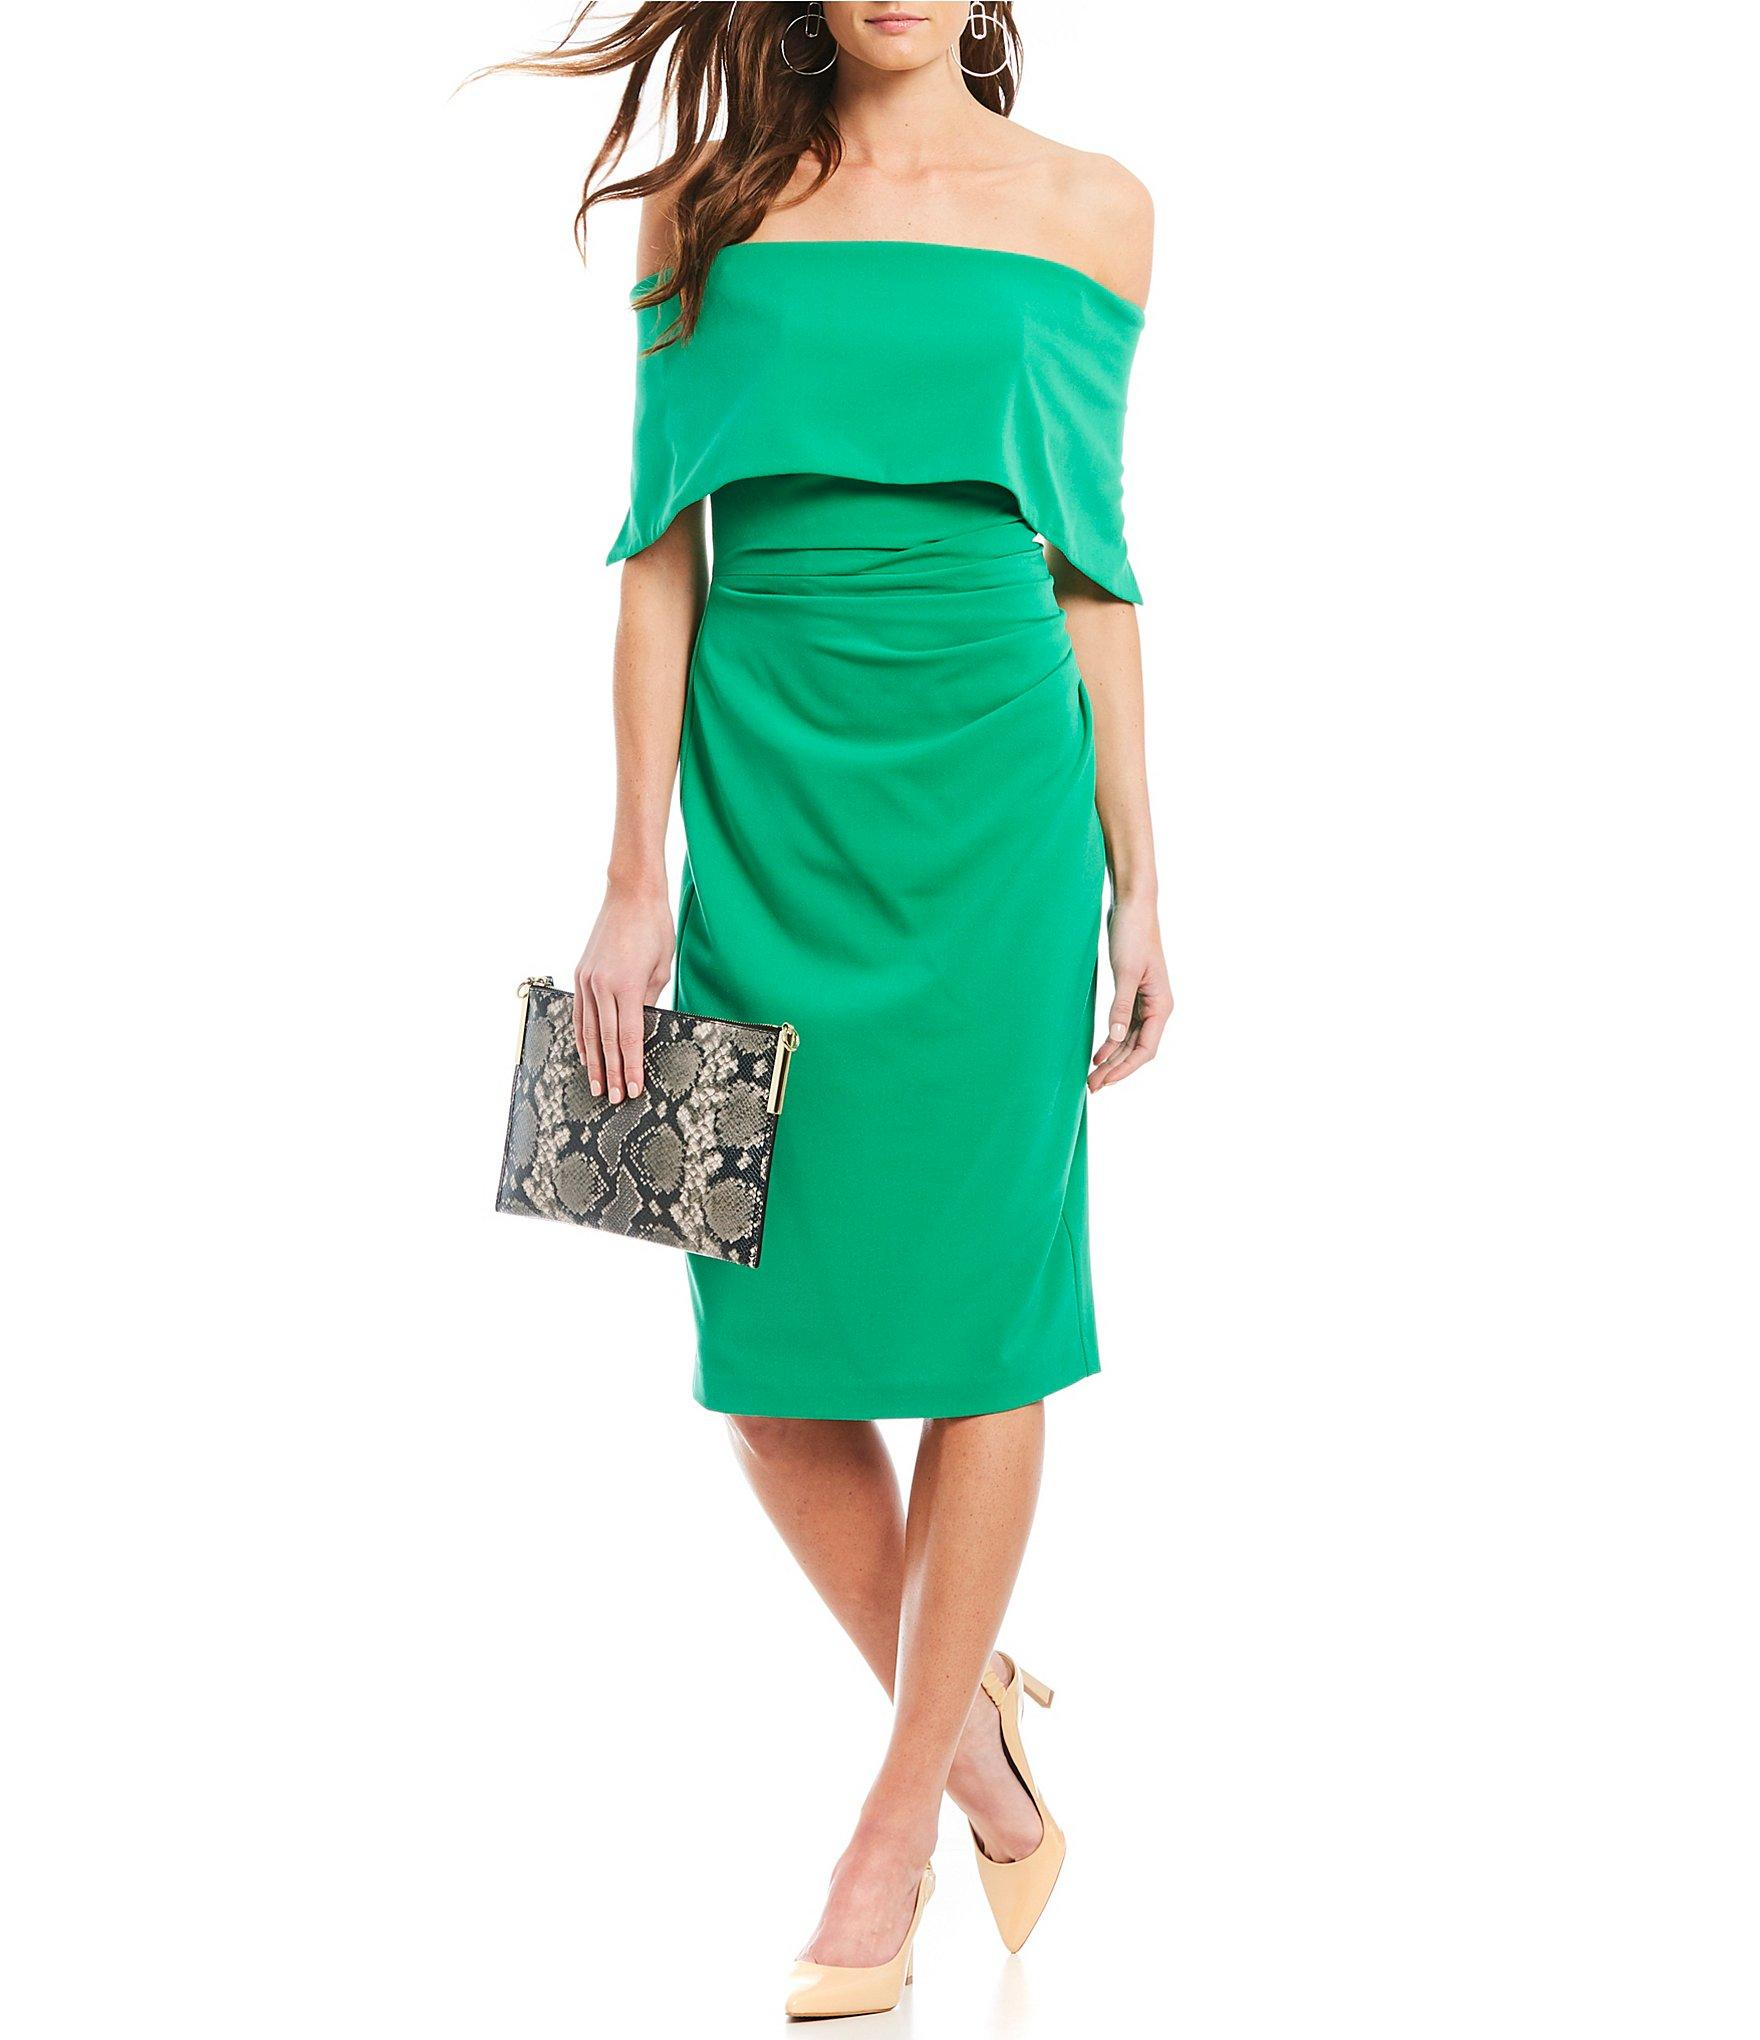 c2e37ab249a Vince Camuto Off-the-shoulder Popover Midi Dress in Green - Lyst